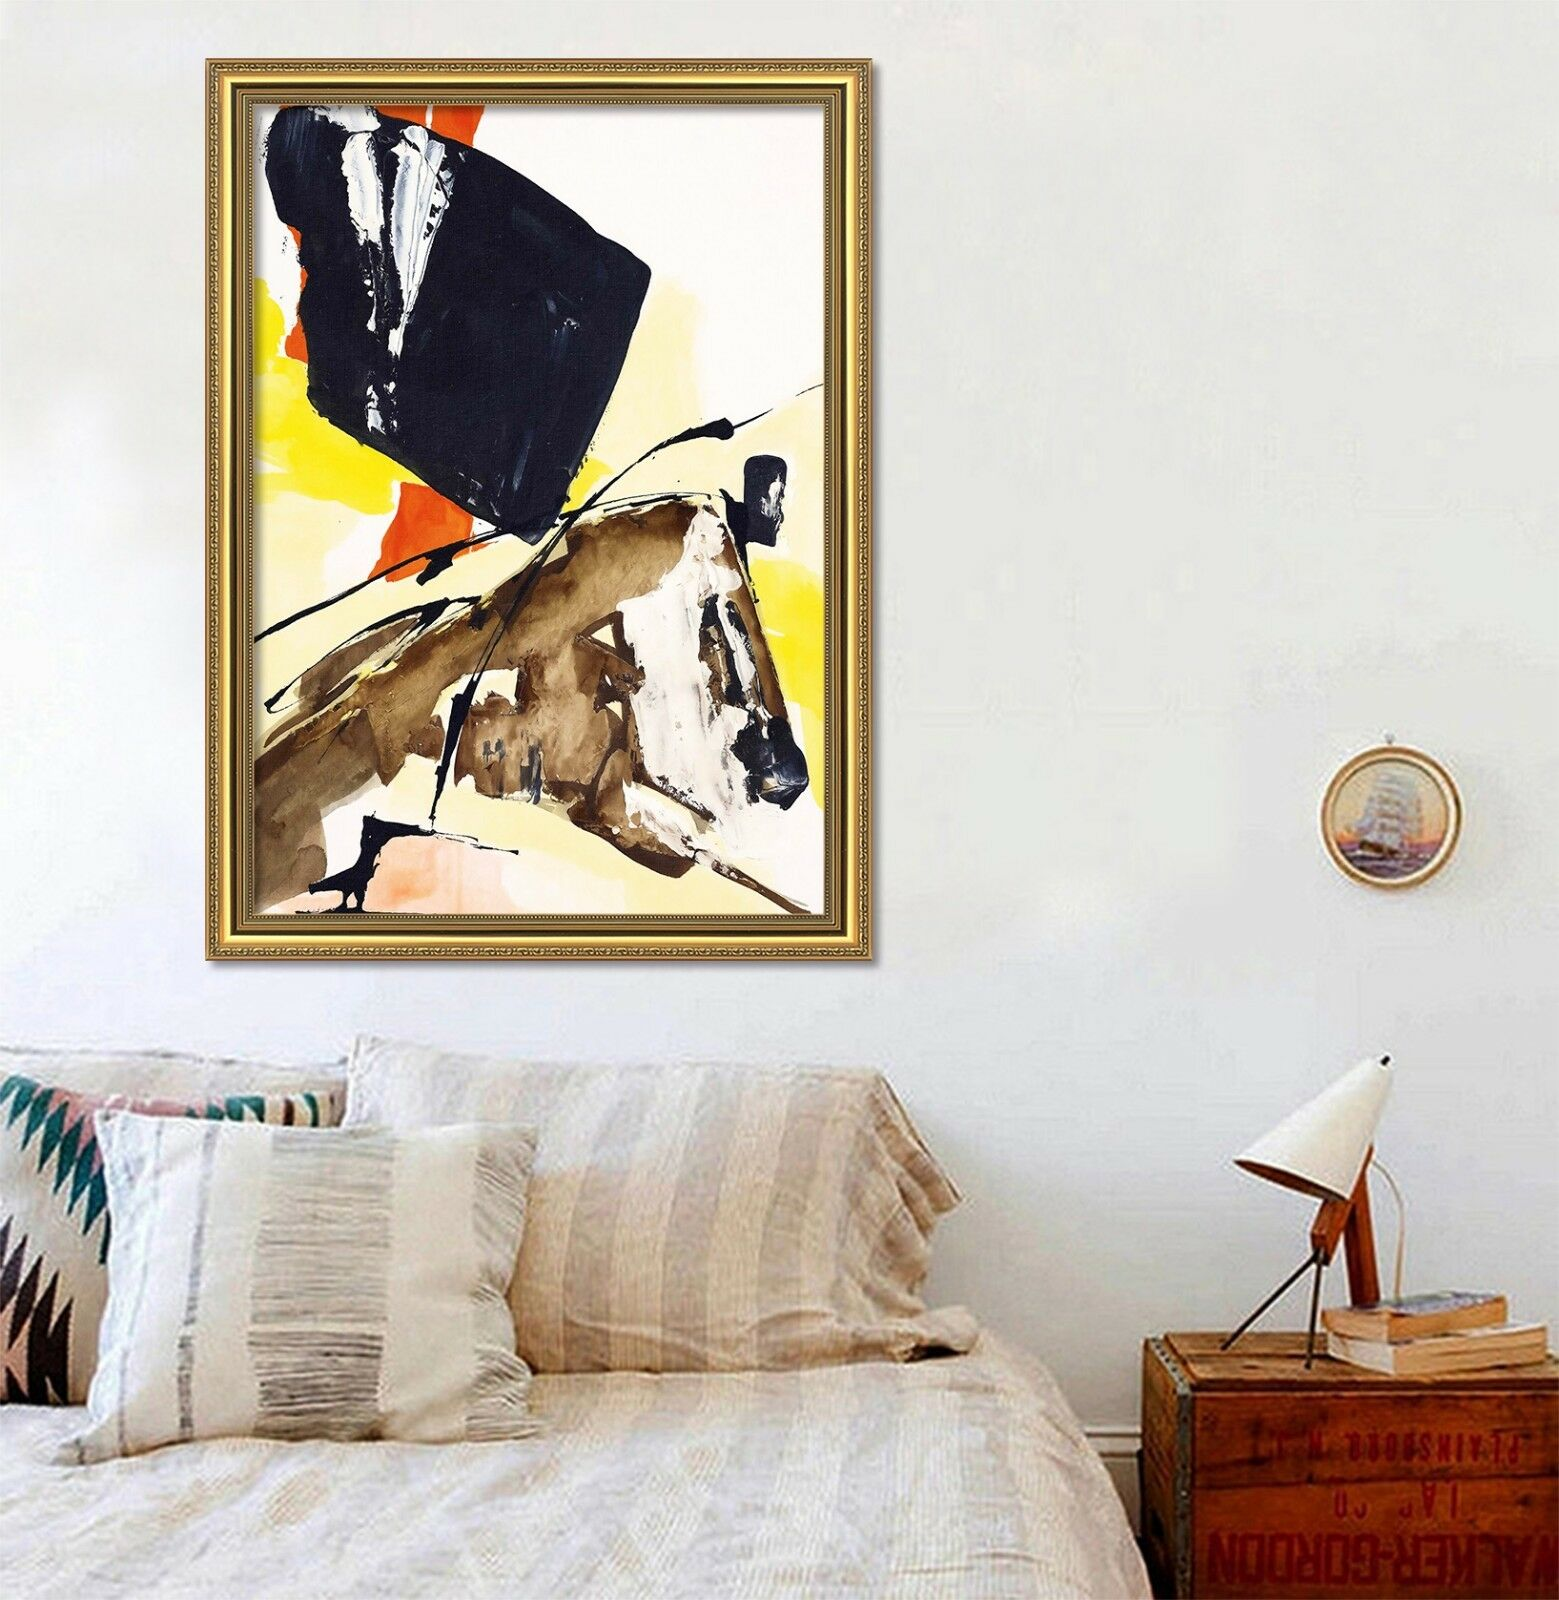 3D Kunstwork Painting 2 Framed Poster Home Decor Drucken Painting Kunst AJ WandPapier